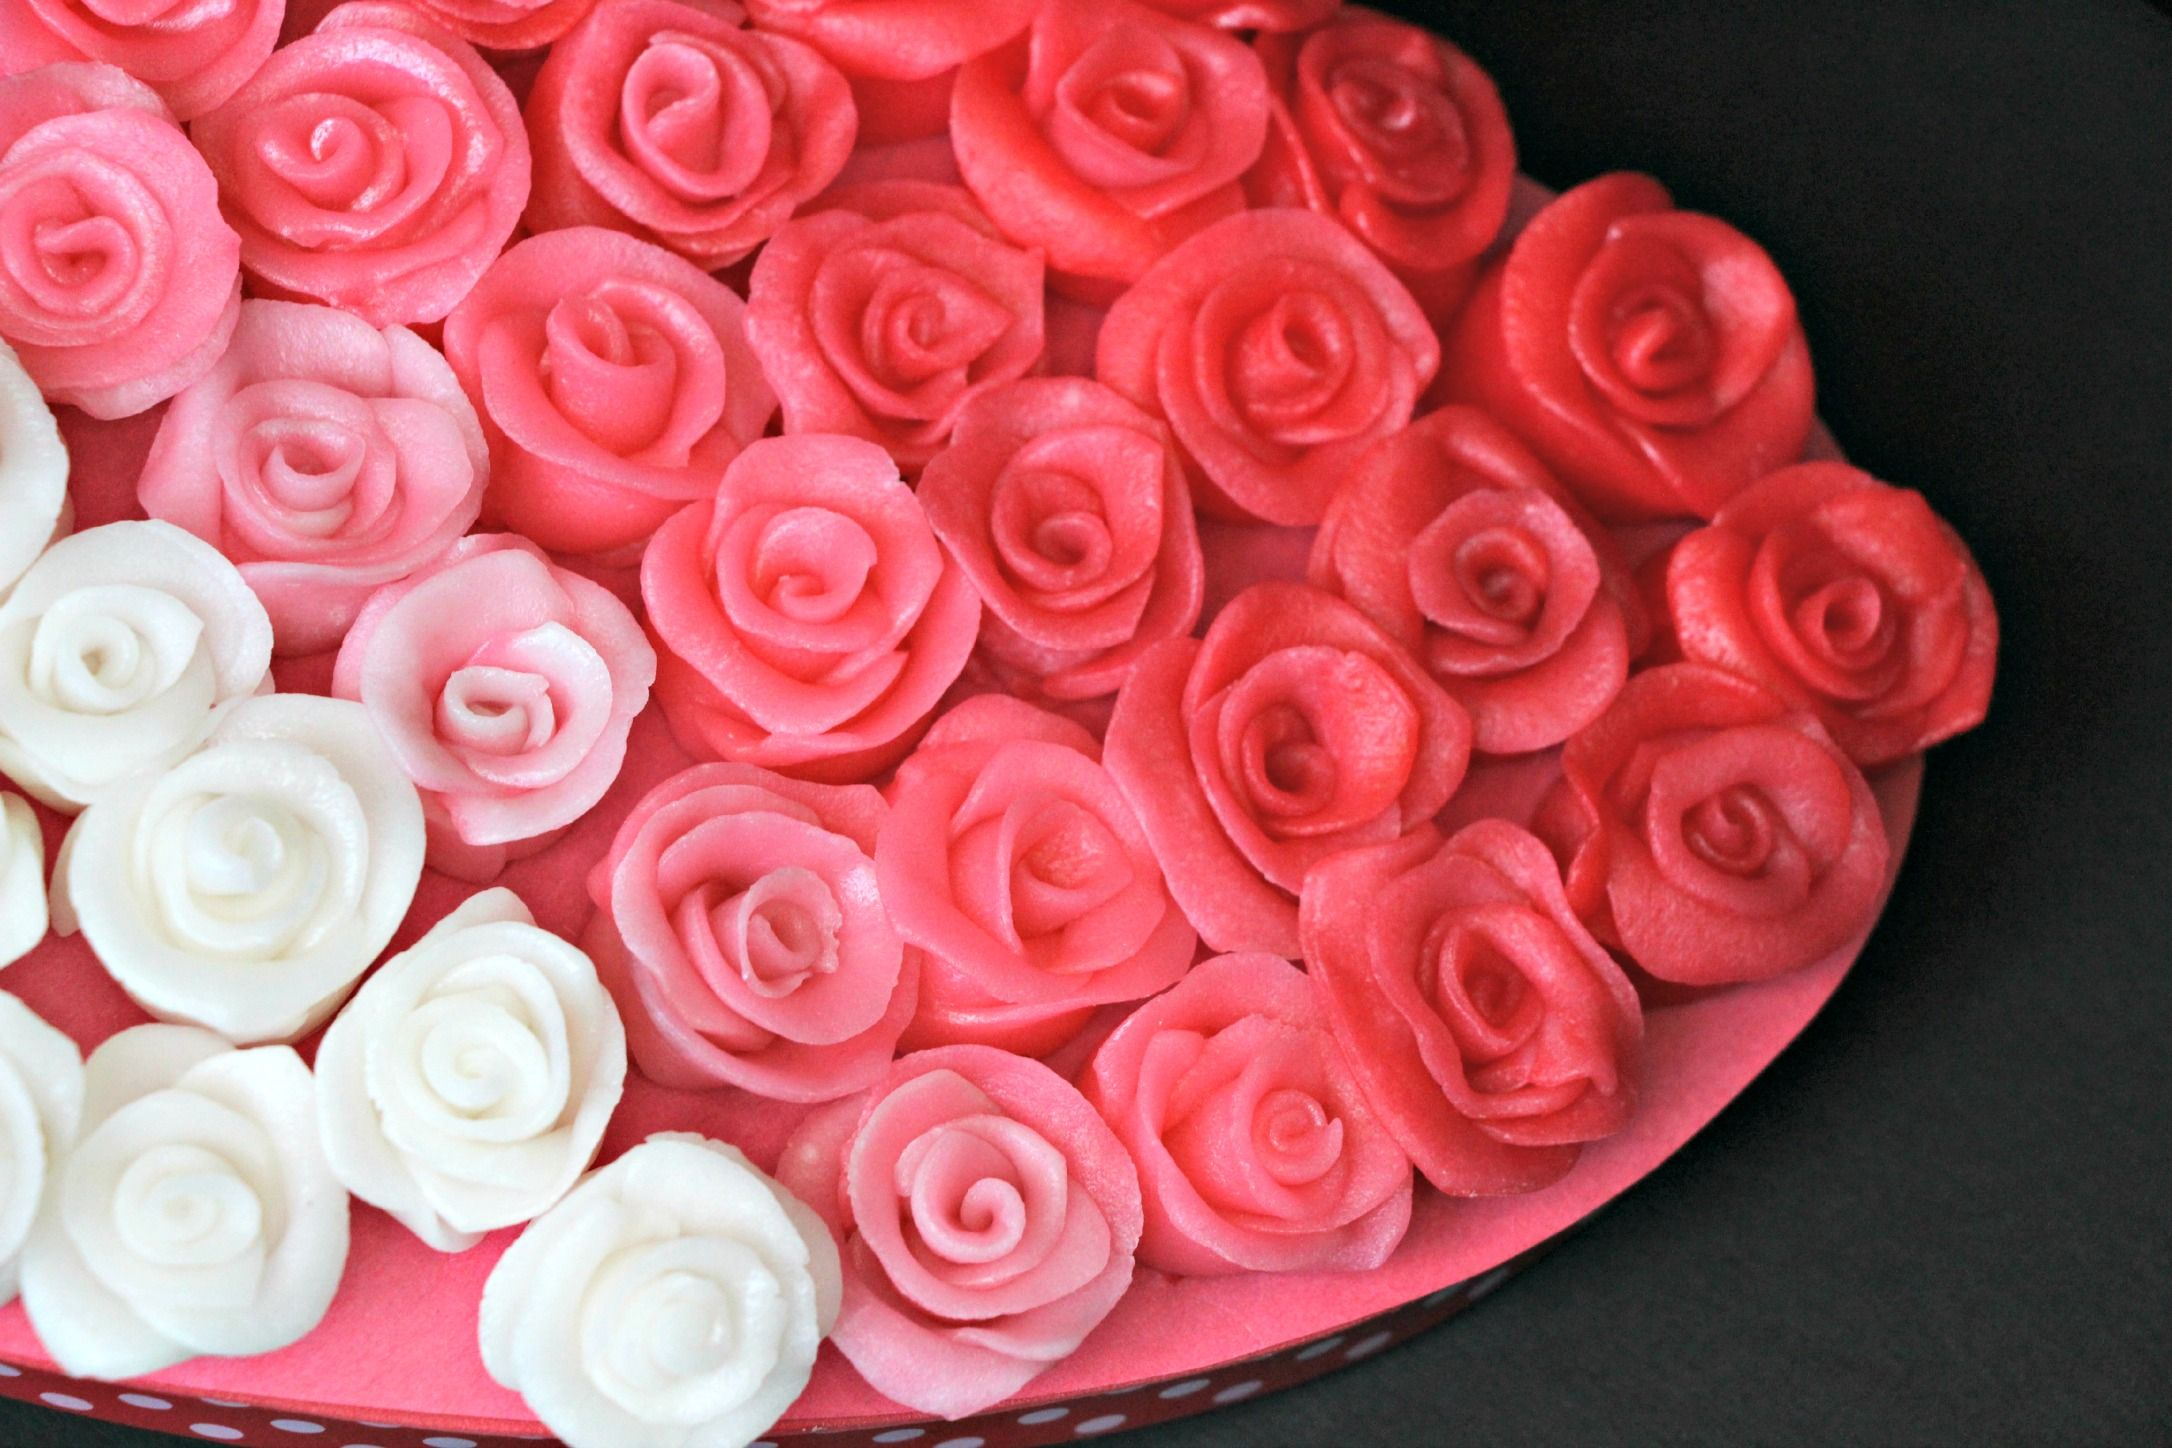 Decoration cheap roses for valentines day sending valentine decoration cheap roses for valentines day sending valentine flowers is a wonderful gesture izmirmasajfo Choice Image